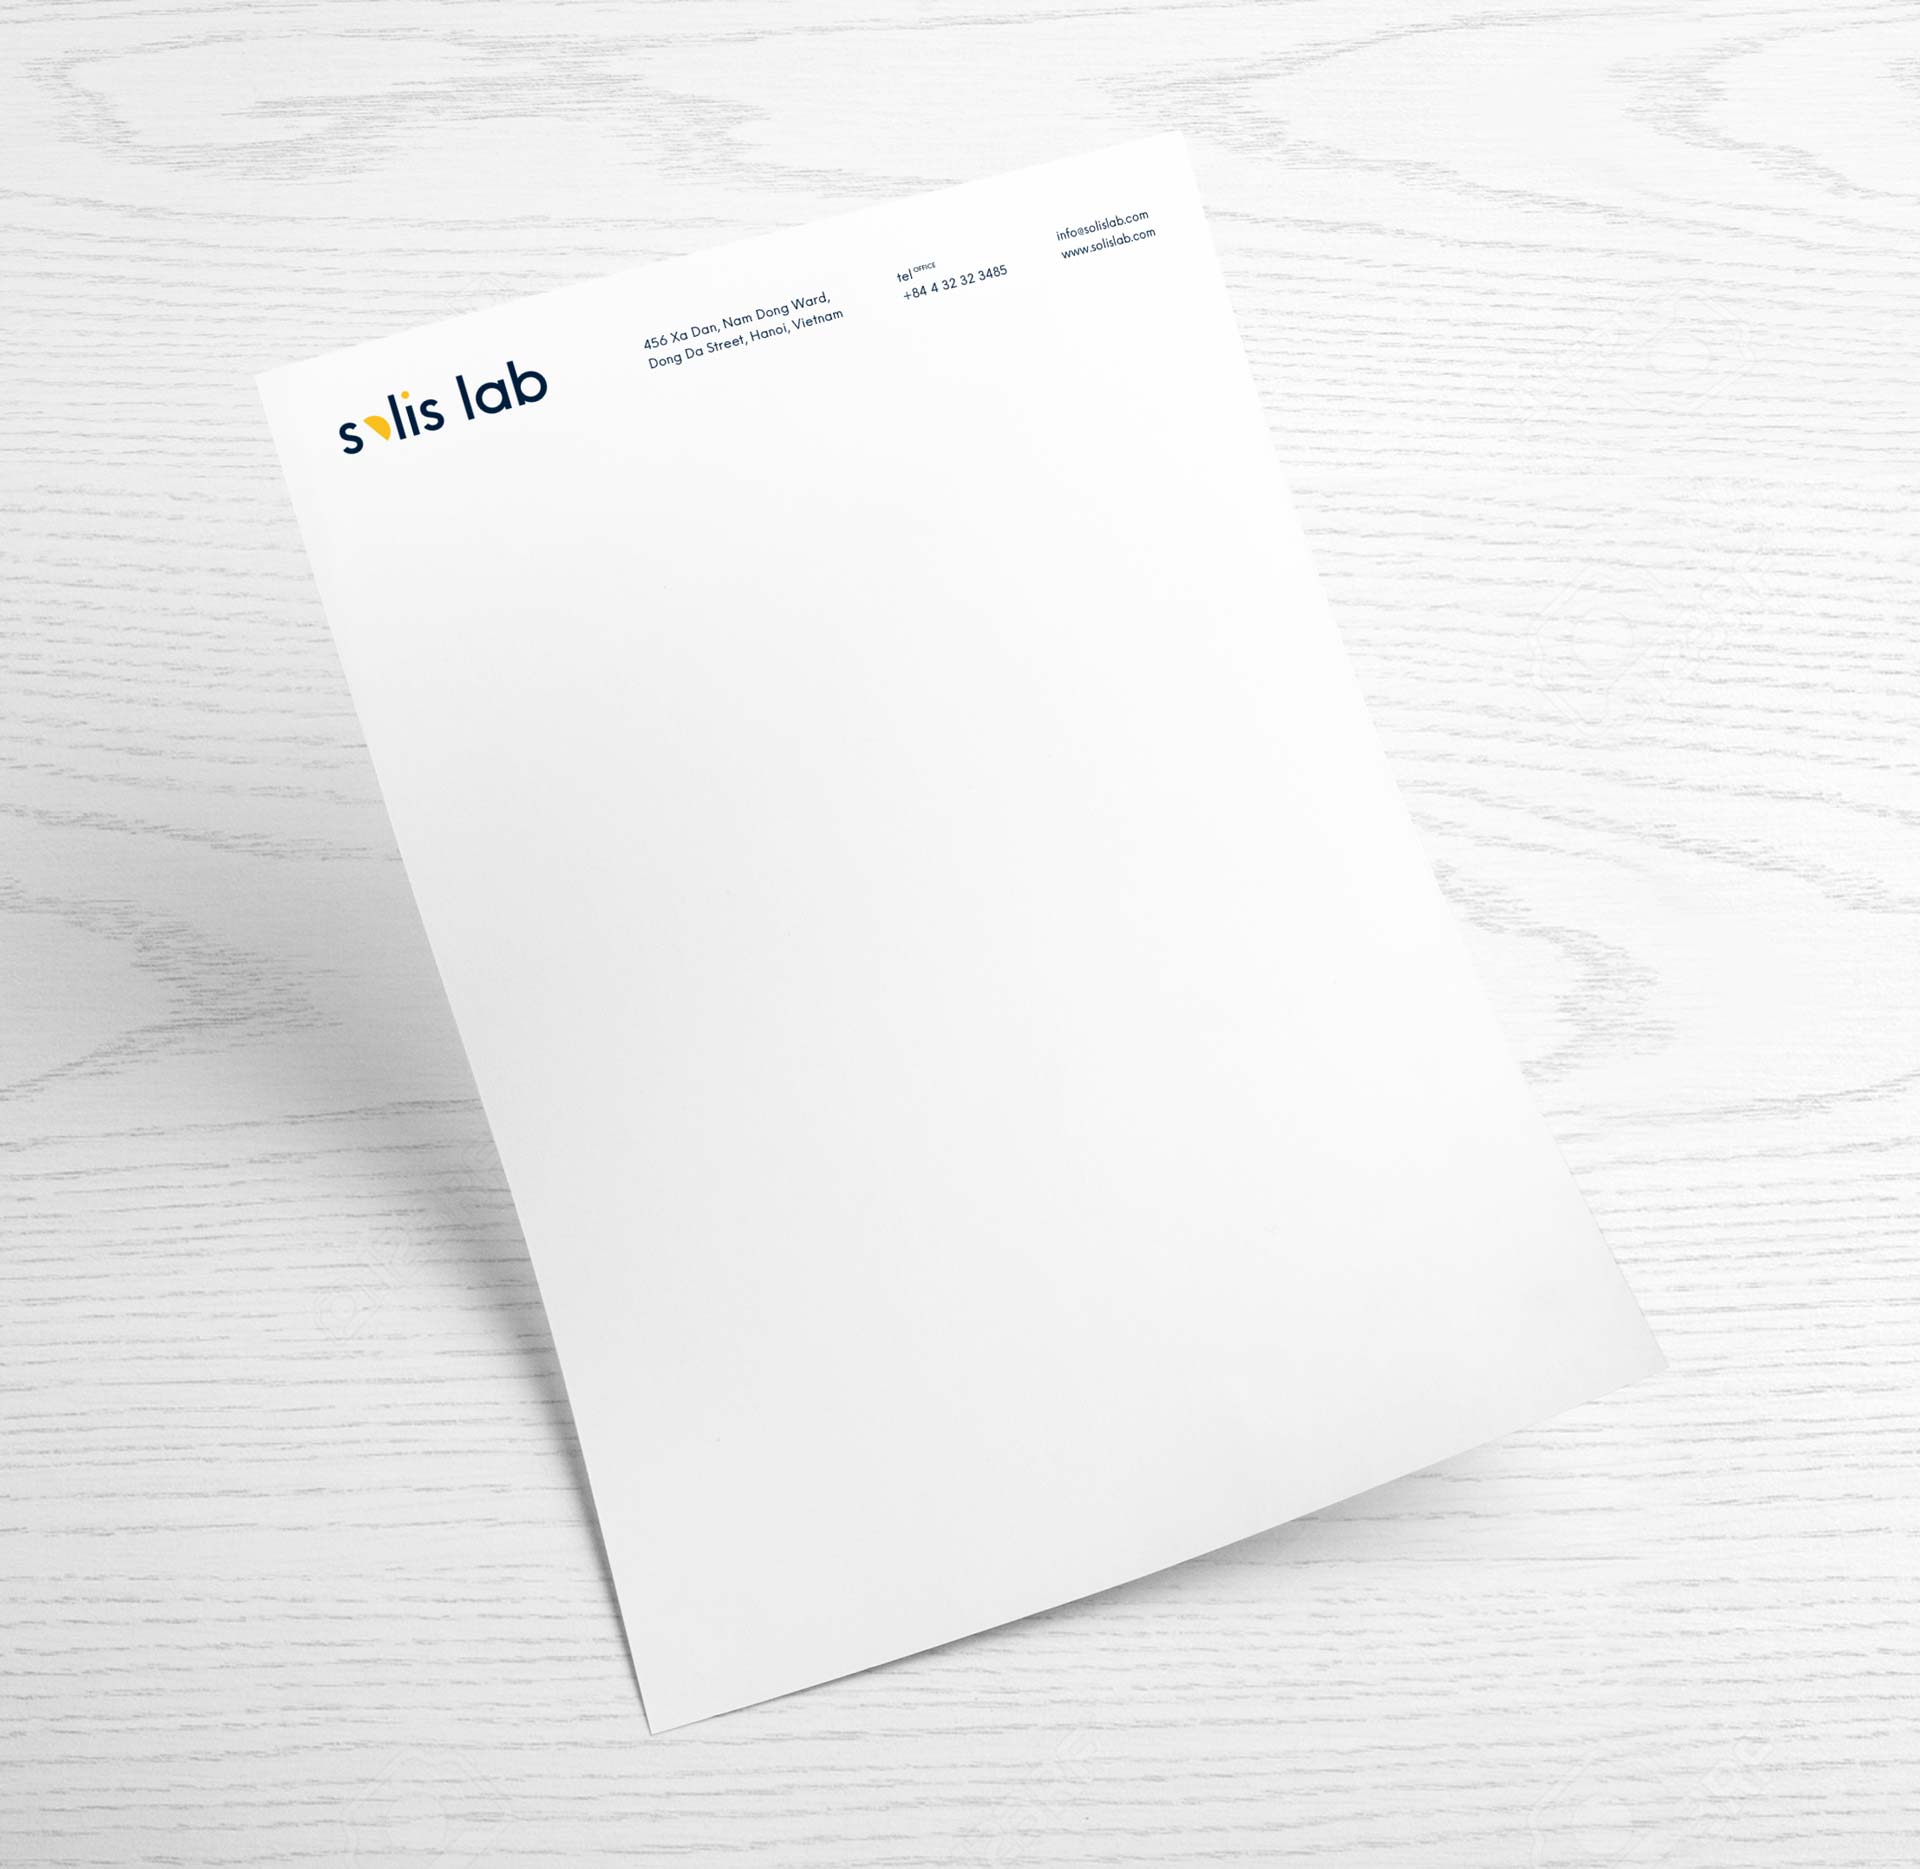 solis lab - letterhead design